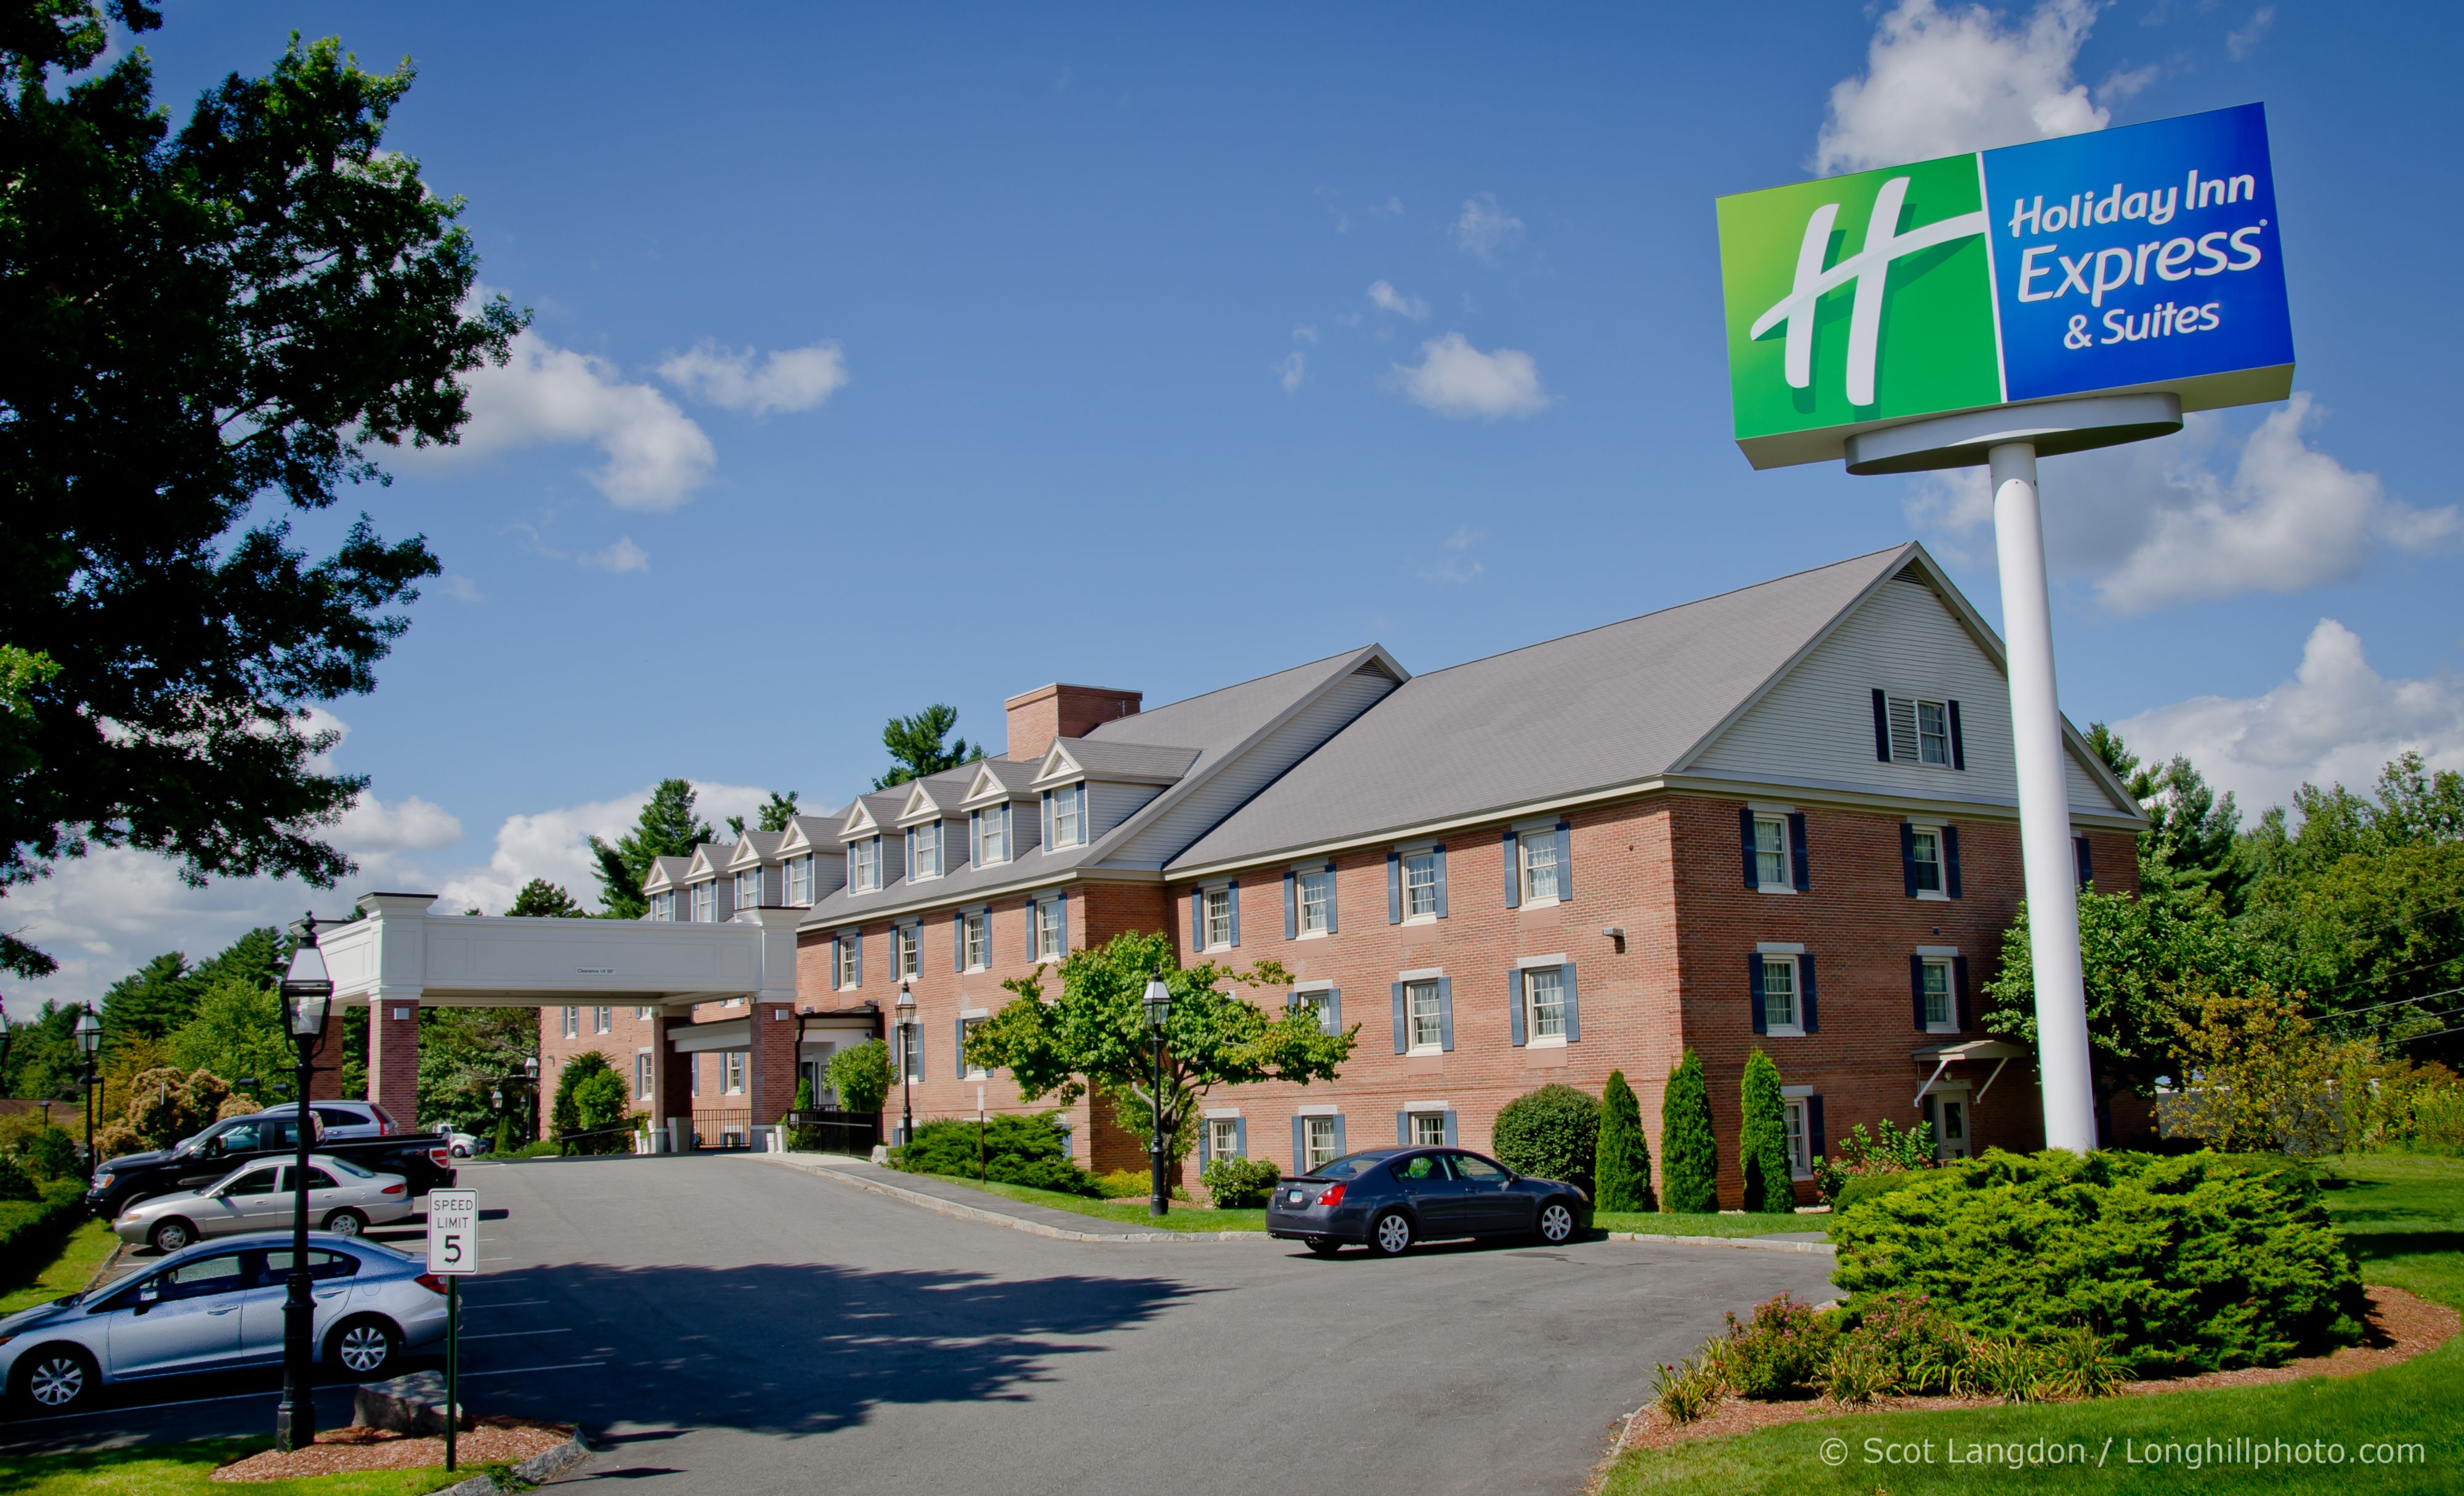 Holiday Inn Express & Suites Meridian image 3